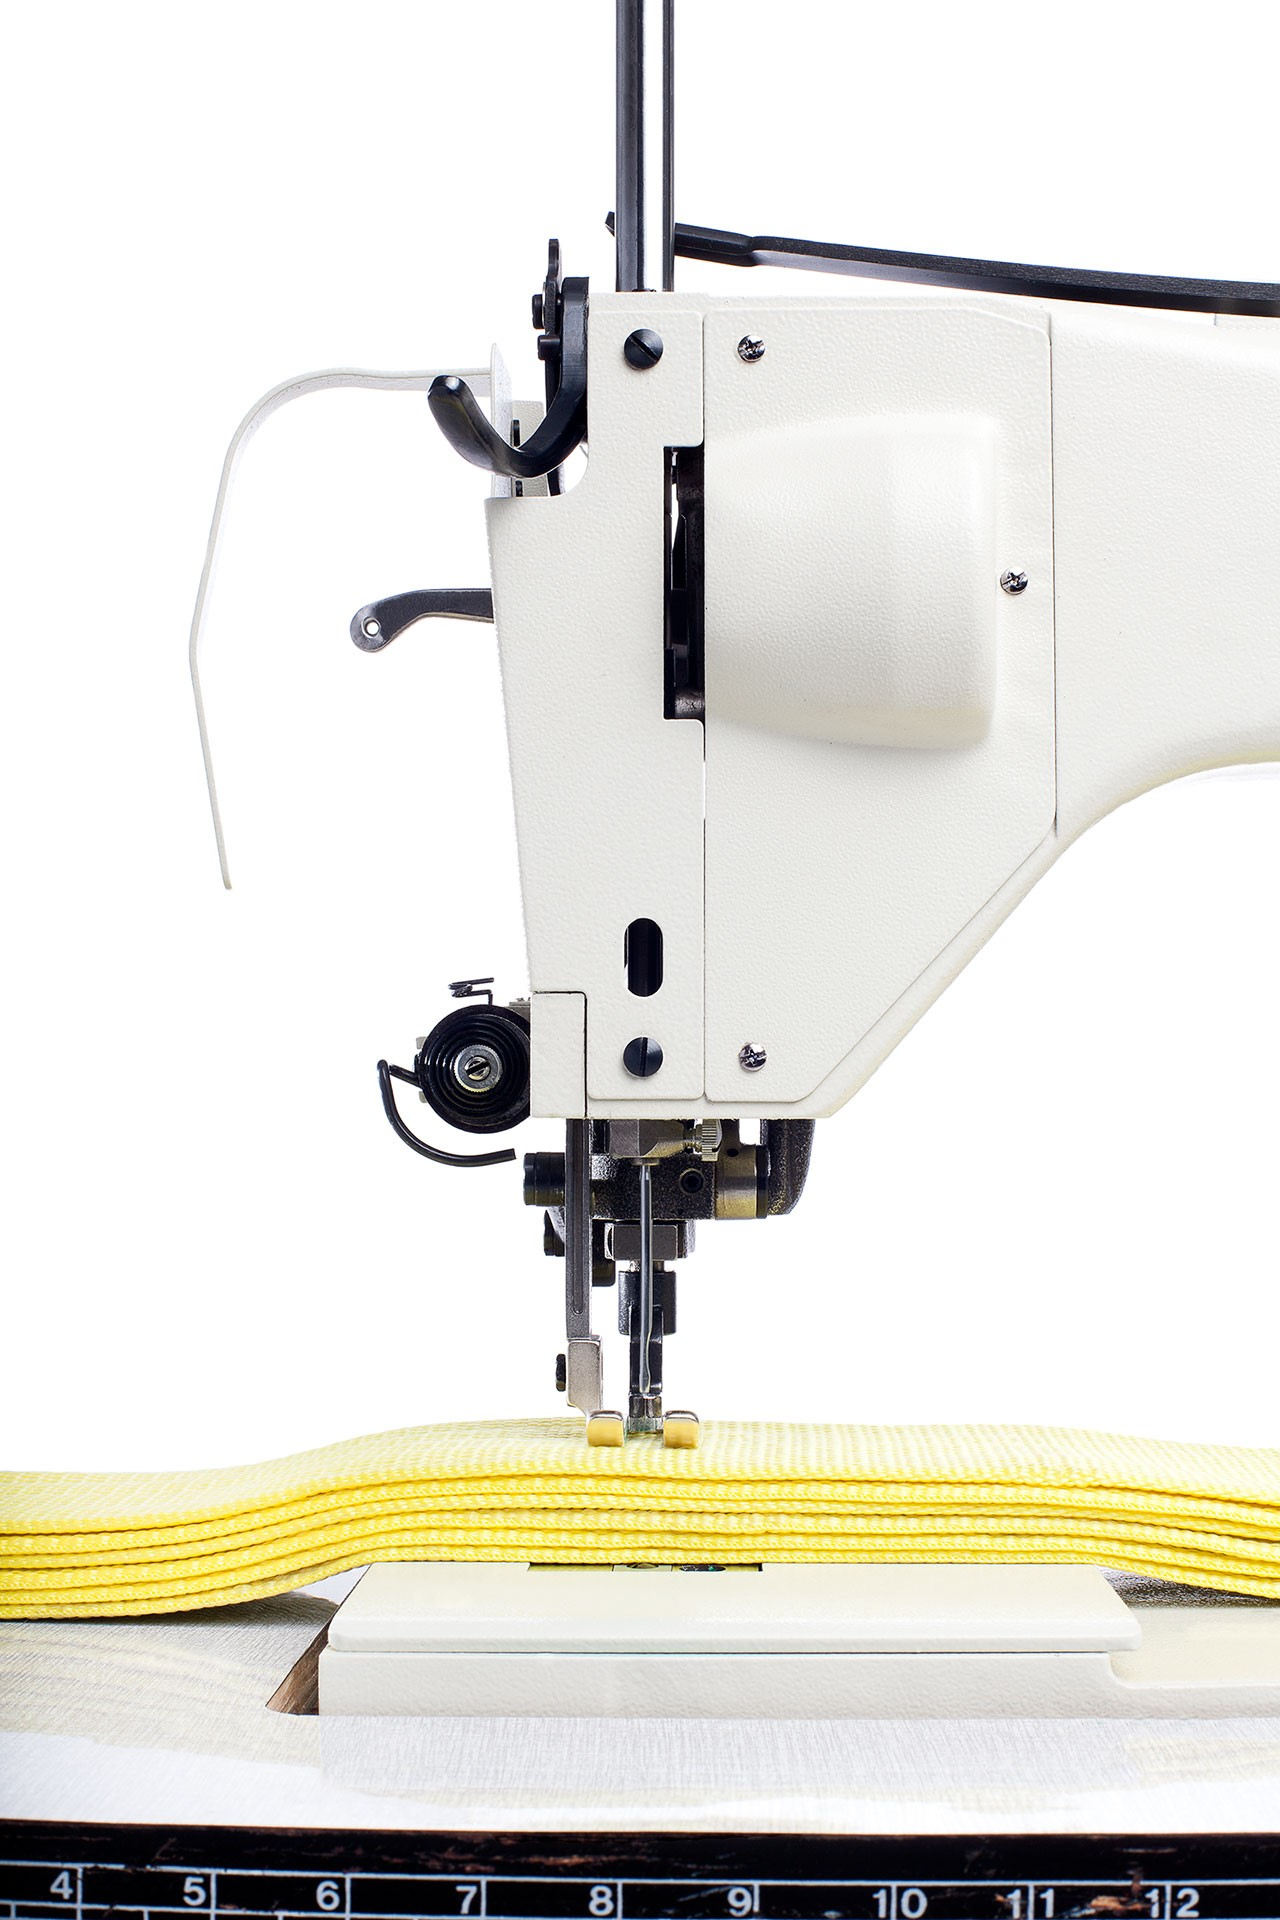 Industrial Sewing Troubleshooting Tips - Fixes for Skipped Stitches